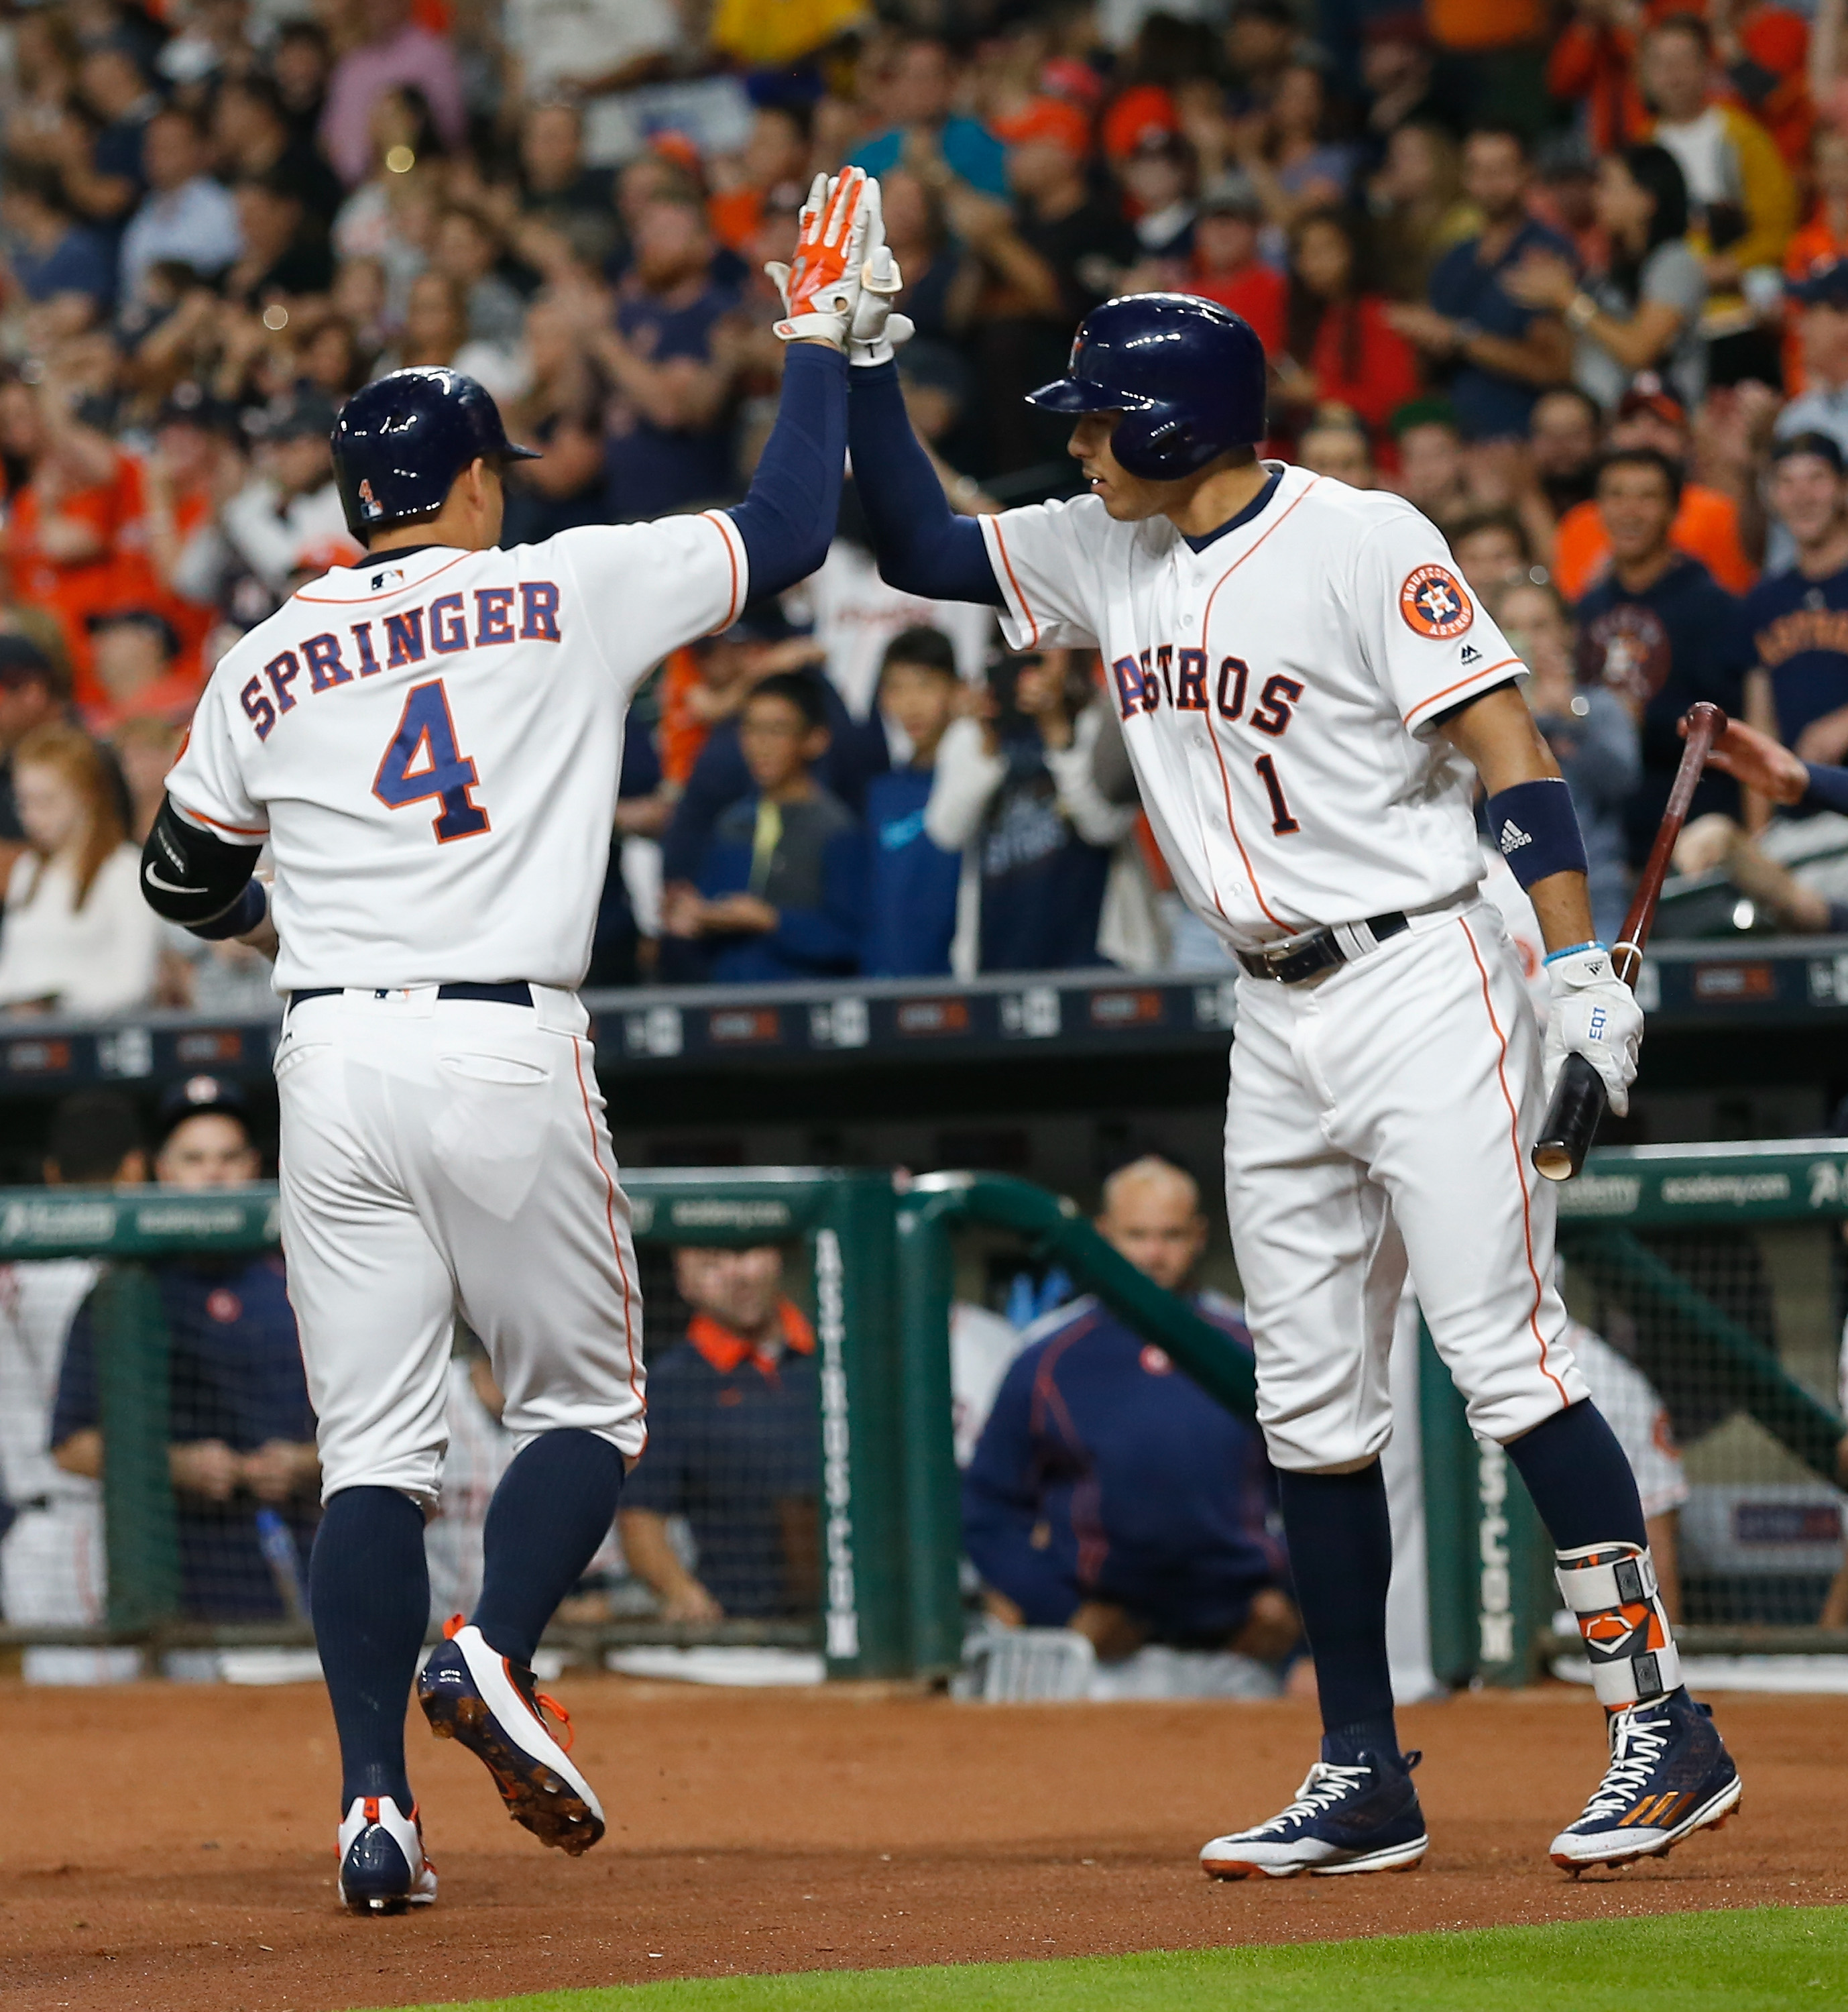 Houston Astros' George Springer (4) receives a high-five from Carlos Correa (1) after hitting a home run against the Detroit Tigers duirng the first inning of a baseball game, Saturday, April 16, 2016, in Houston.  (AP Photo/Bob Levey)